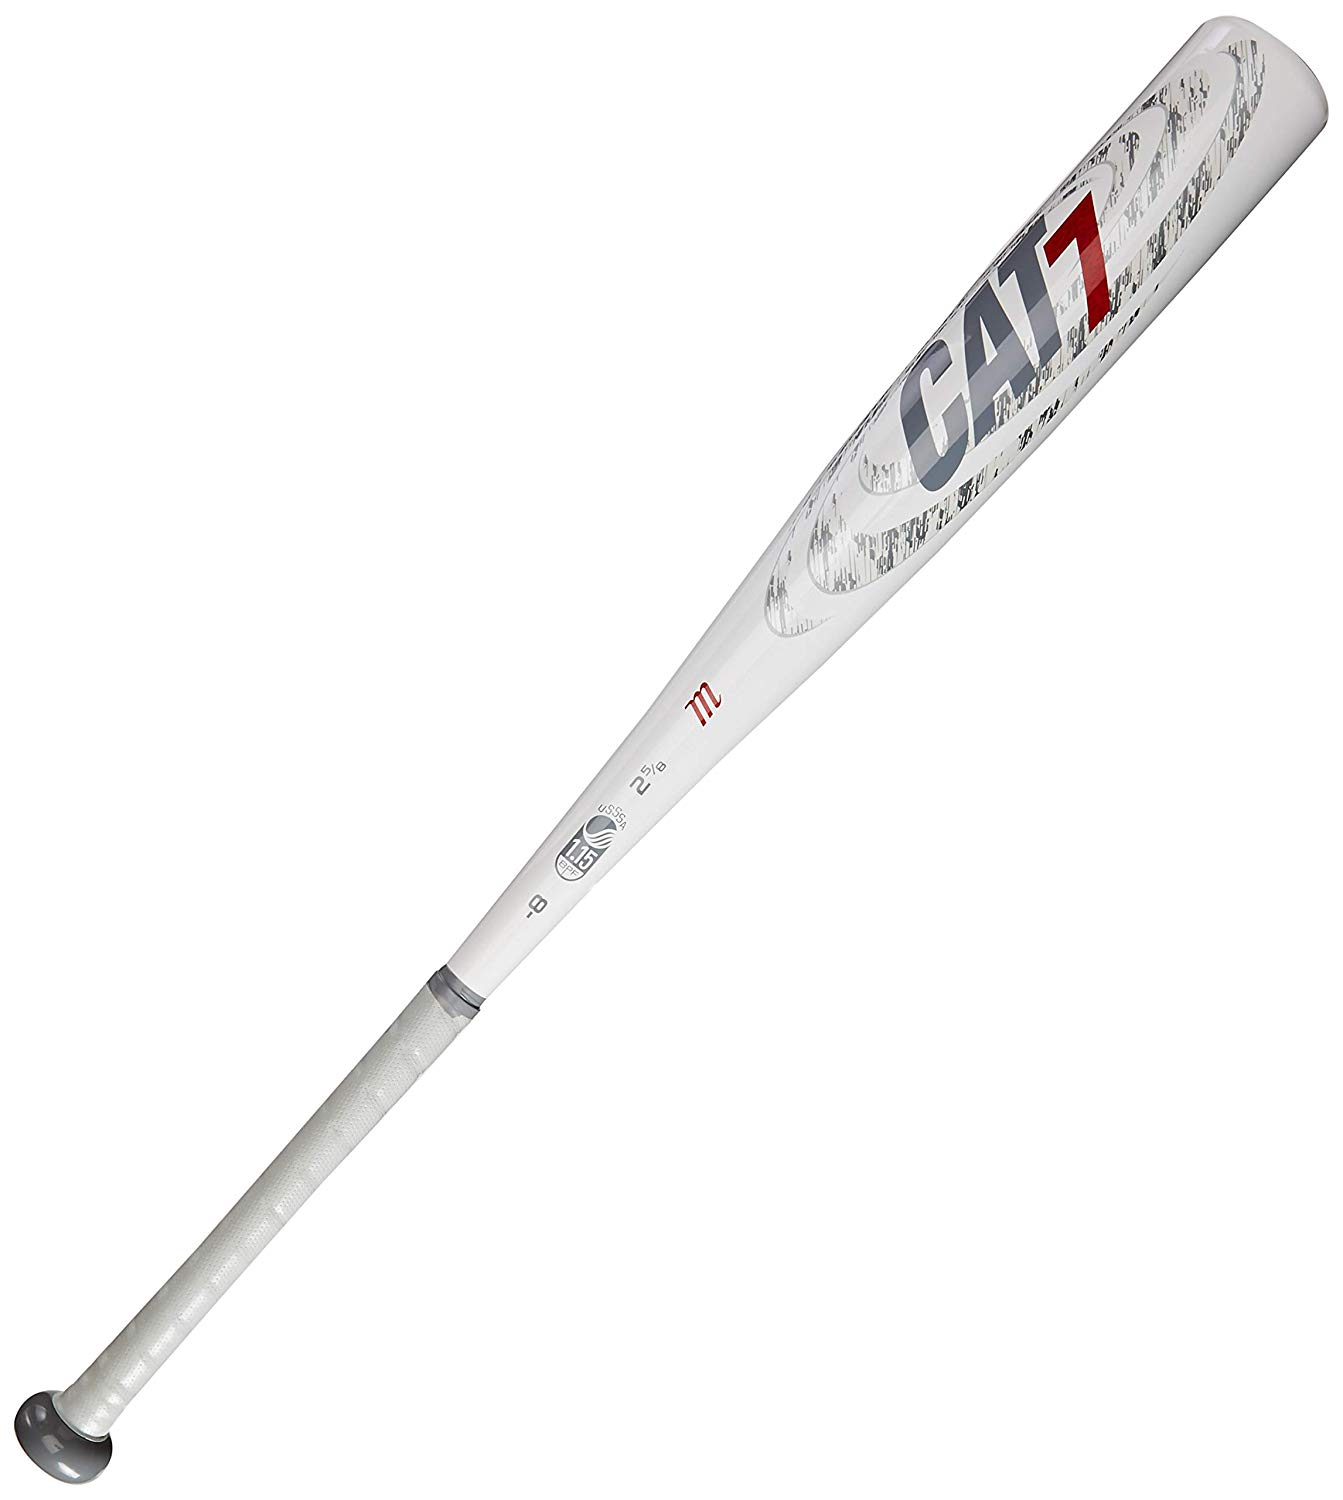 marucci-cat7-8-baseball-bat-30-inch-22-oz MSBYC78-3022 Marucci 849817039946 Az4x alloy construction provides increased strength and a higher response rate.